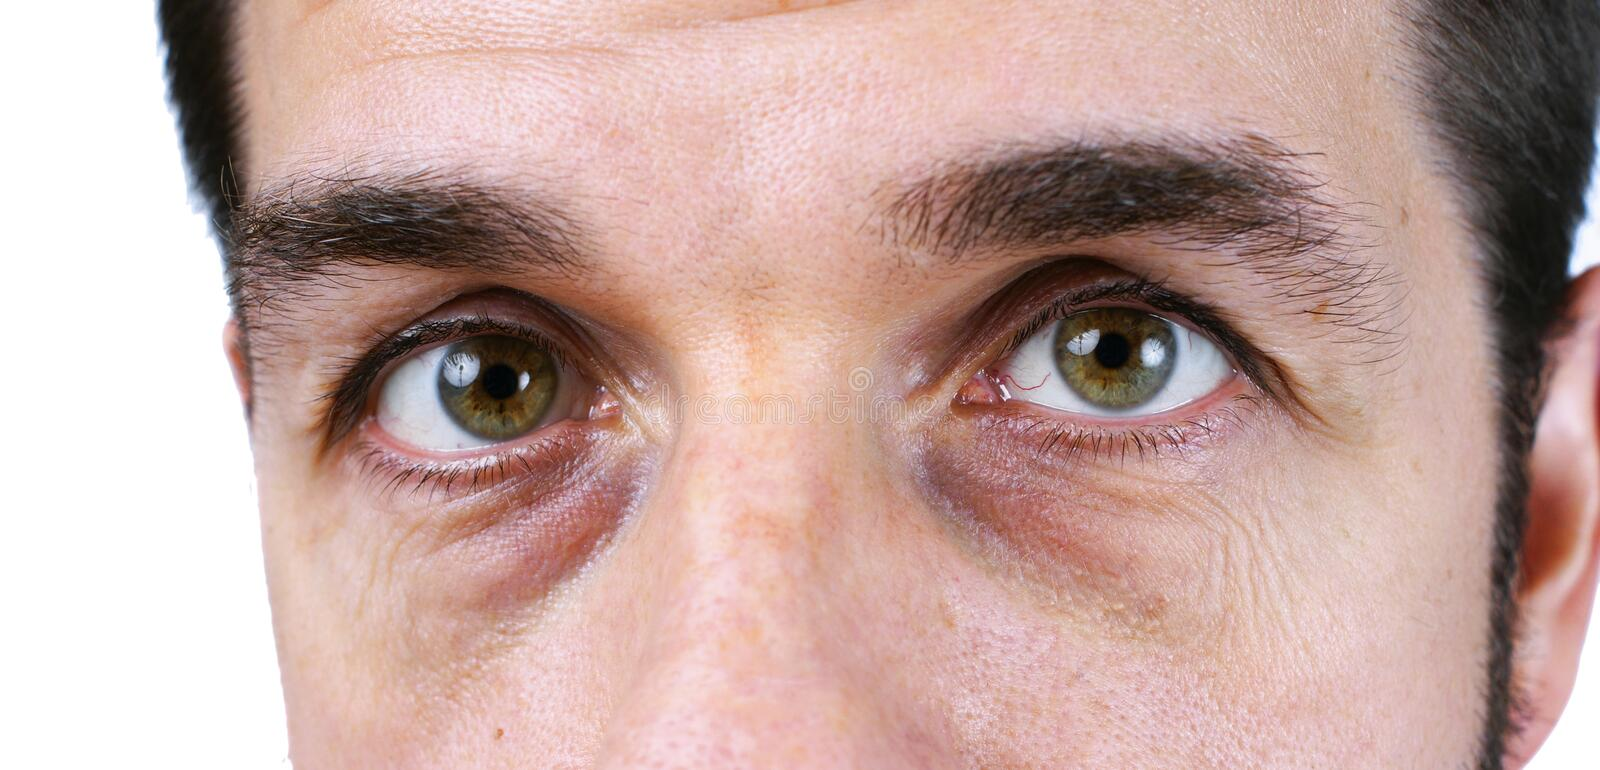 Man's vey tired eyes stock photography